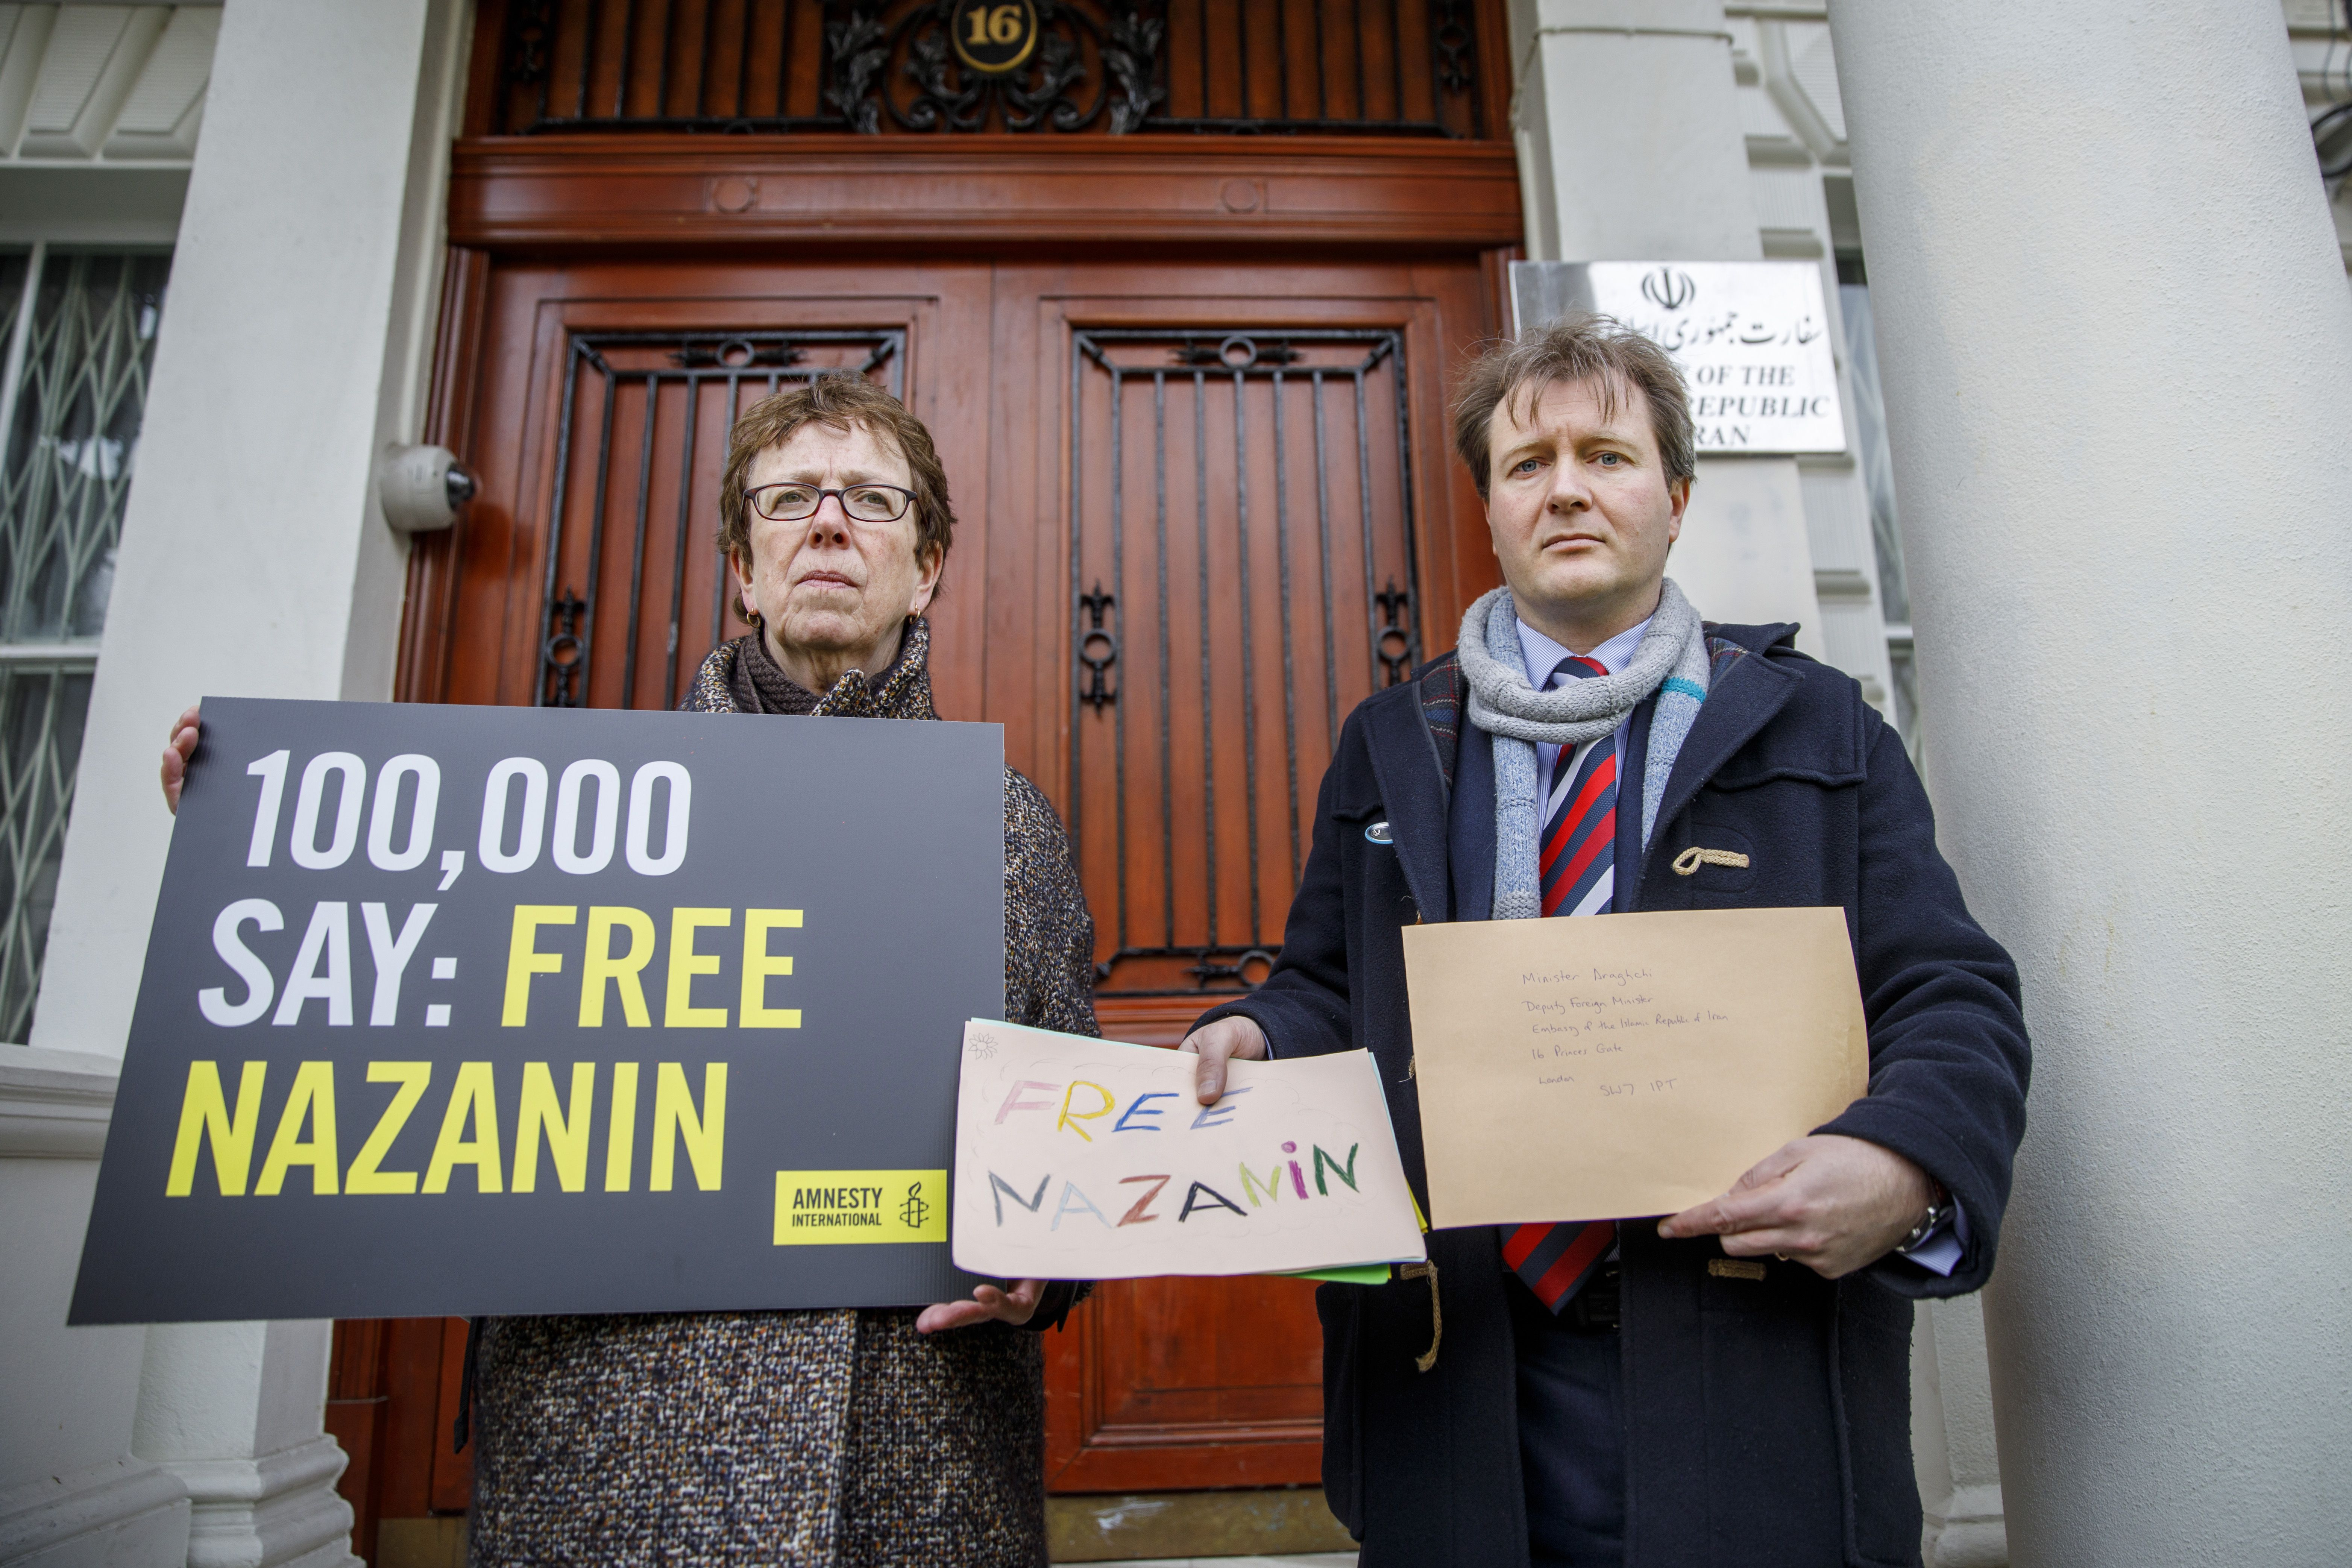 Richard Ratcliffe, (R), husband of jailed British-Iranian woman Nazanin Zaghari-Ratcliffe, delivers a petition and a letter to demand her release, at the Iranian Embassy in London on Feb. 21, 2018.